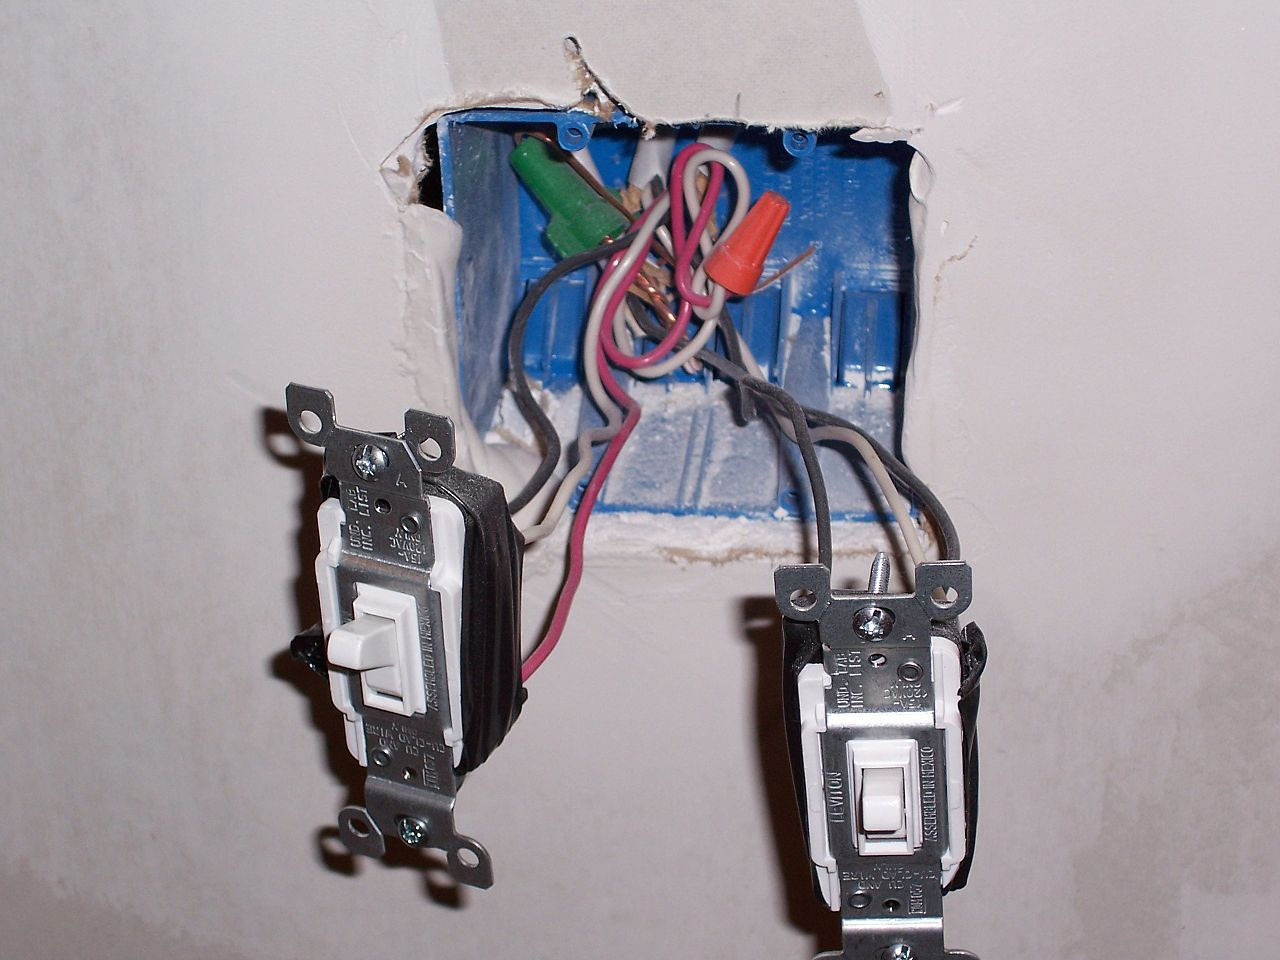 Electrical Wiring Receptacles Series How To Connect Electrical Wires To Fixture Terminals